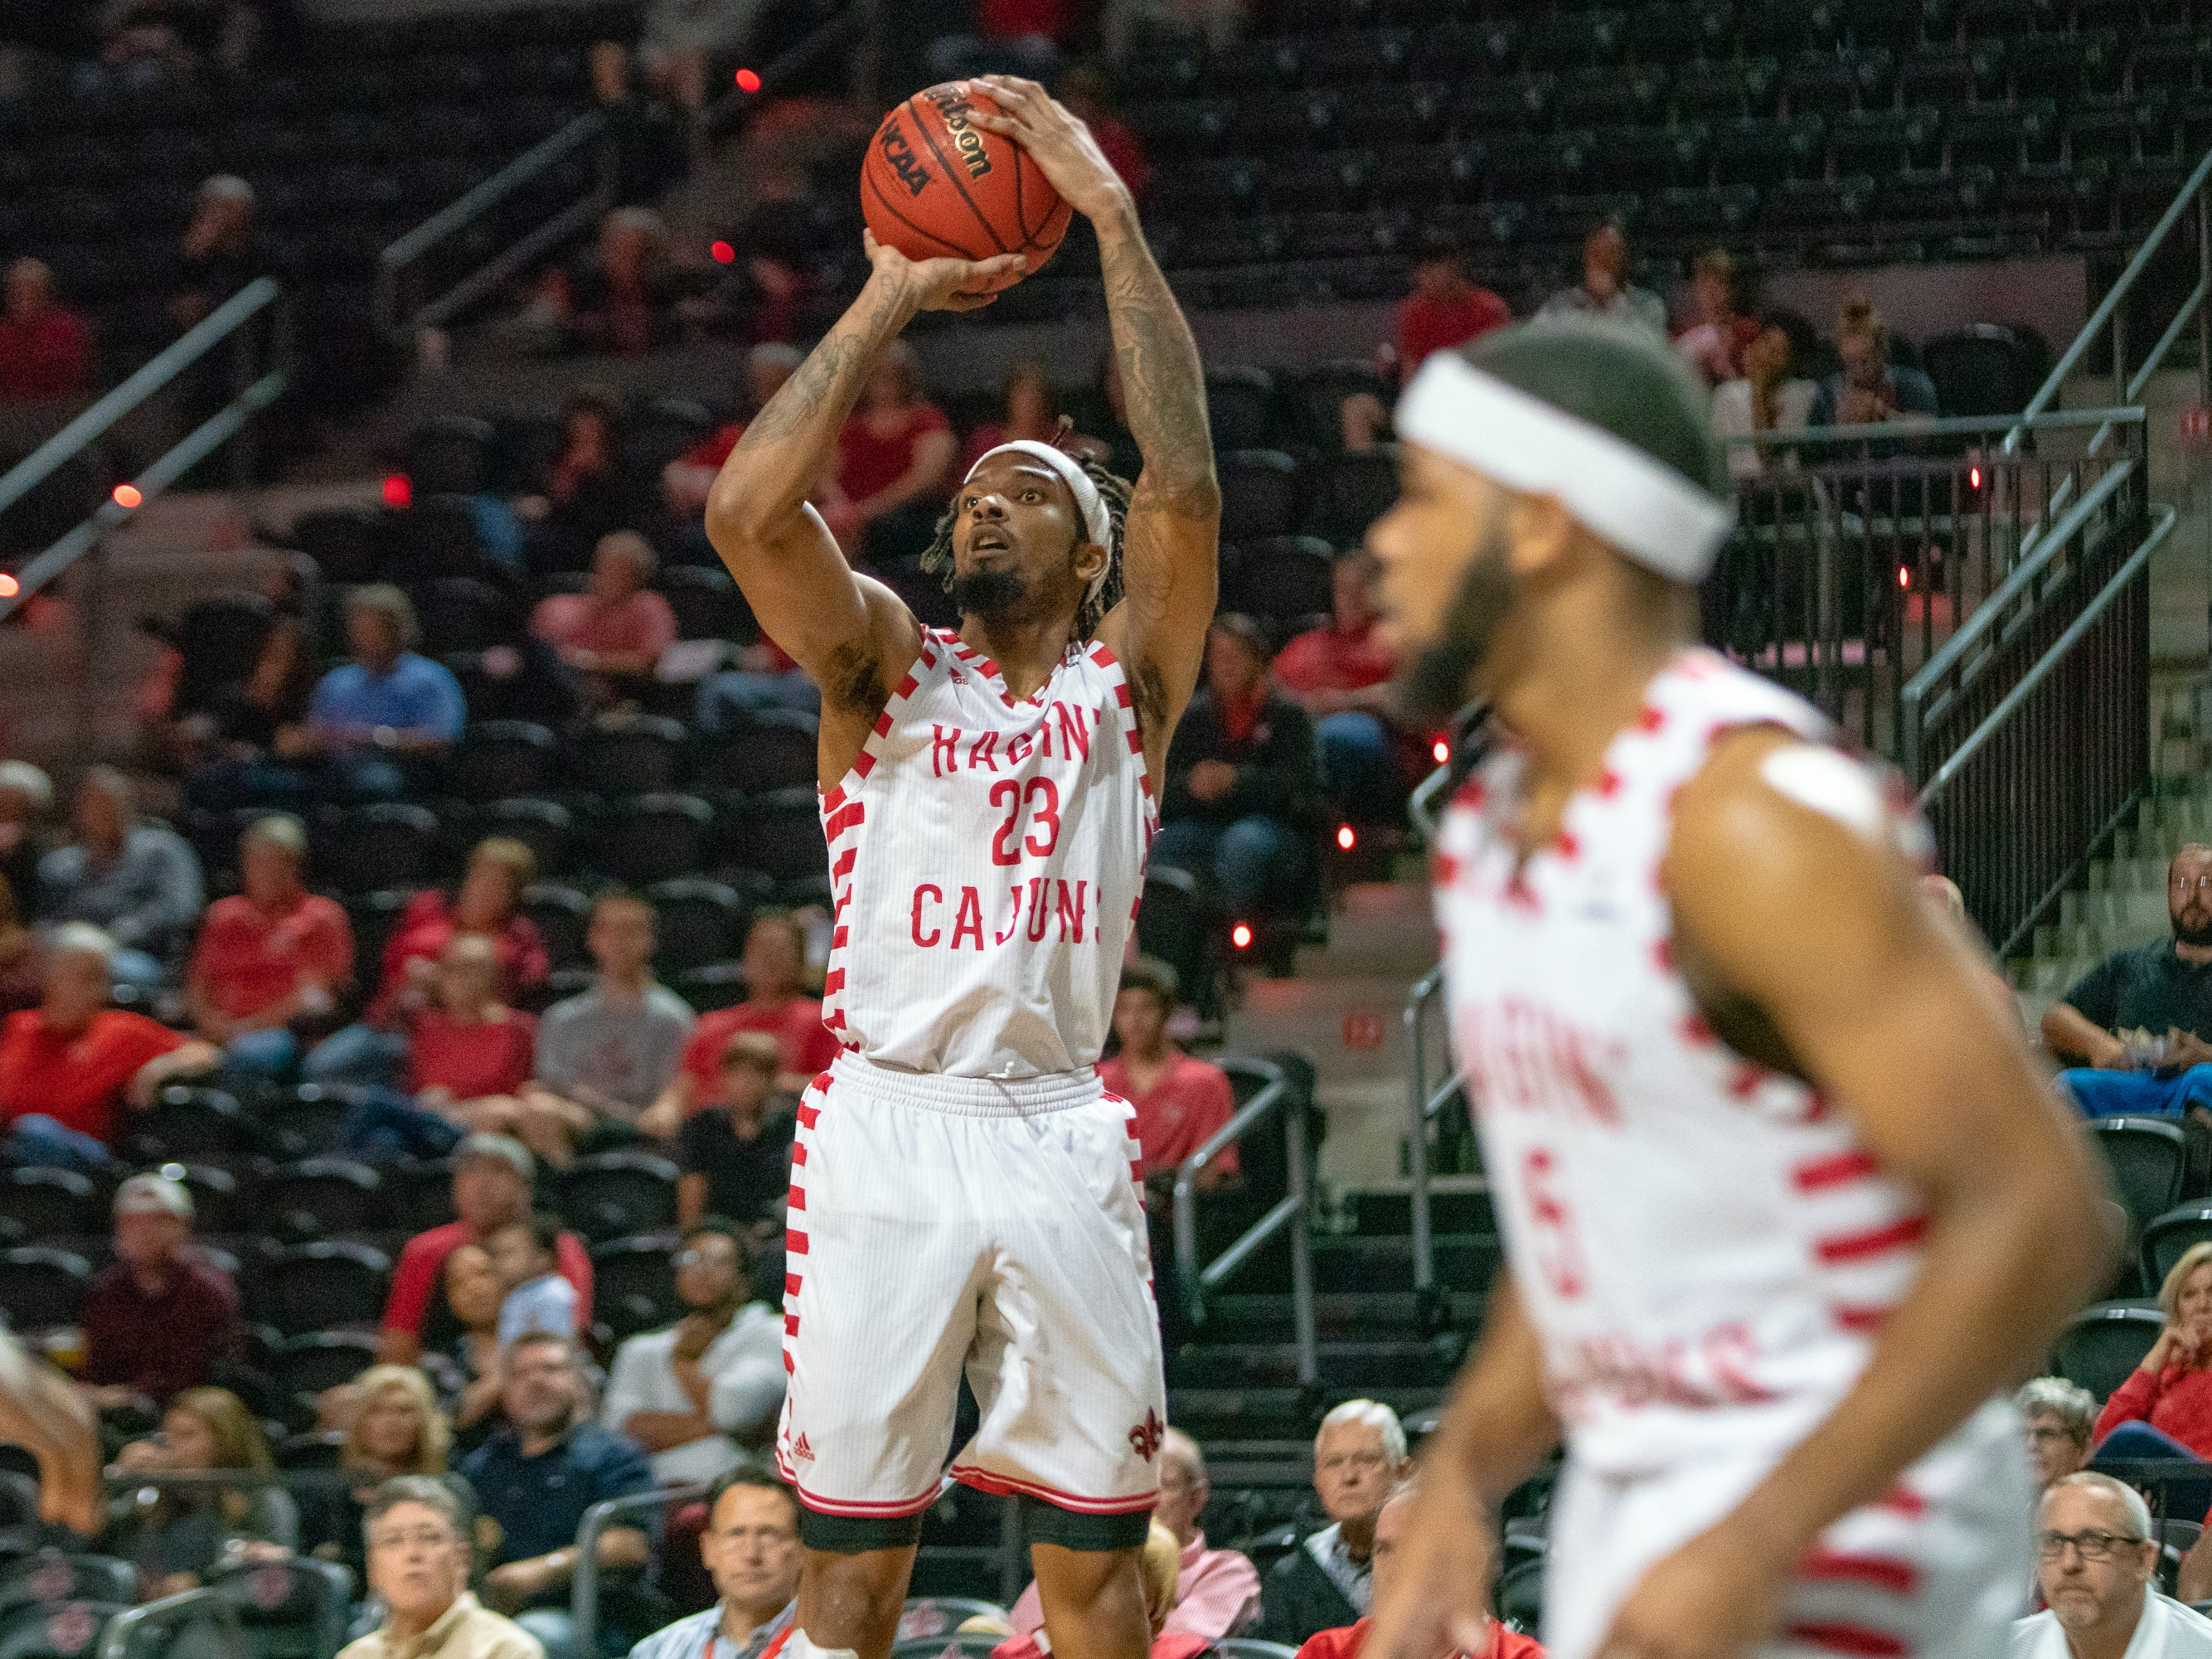 UL's JaKeenan Gant shoots for three points as the Ragin' Cajuns take on the Georgia Southern Eagles at the Cajundome on Feb. 6, 2019.